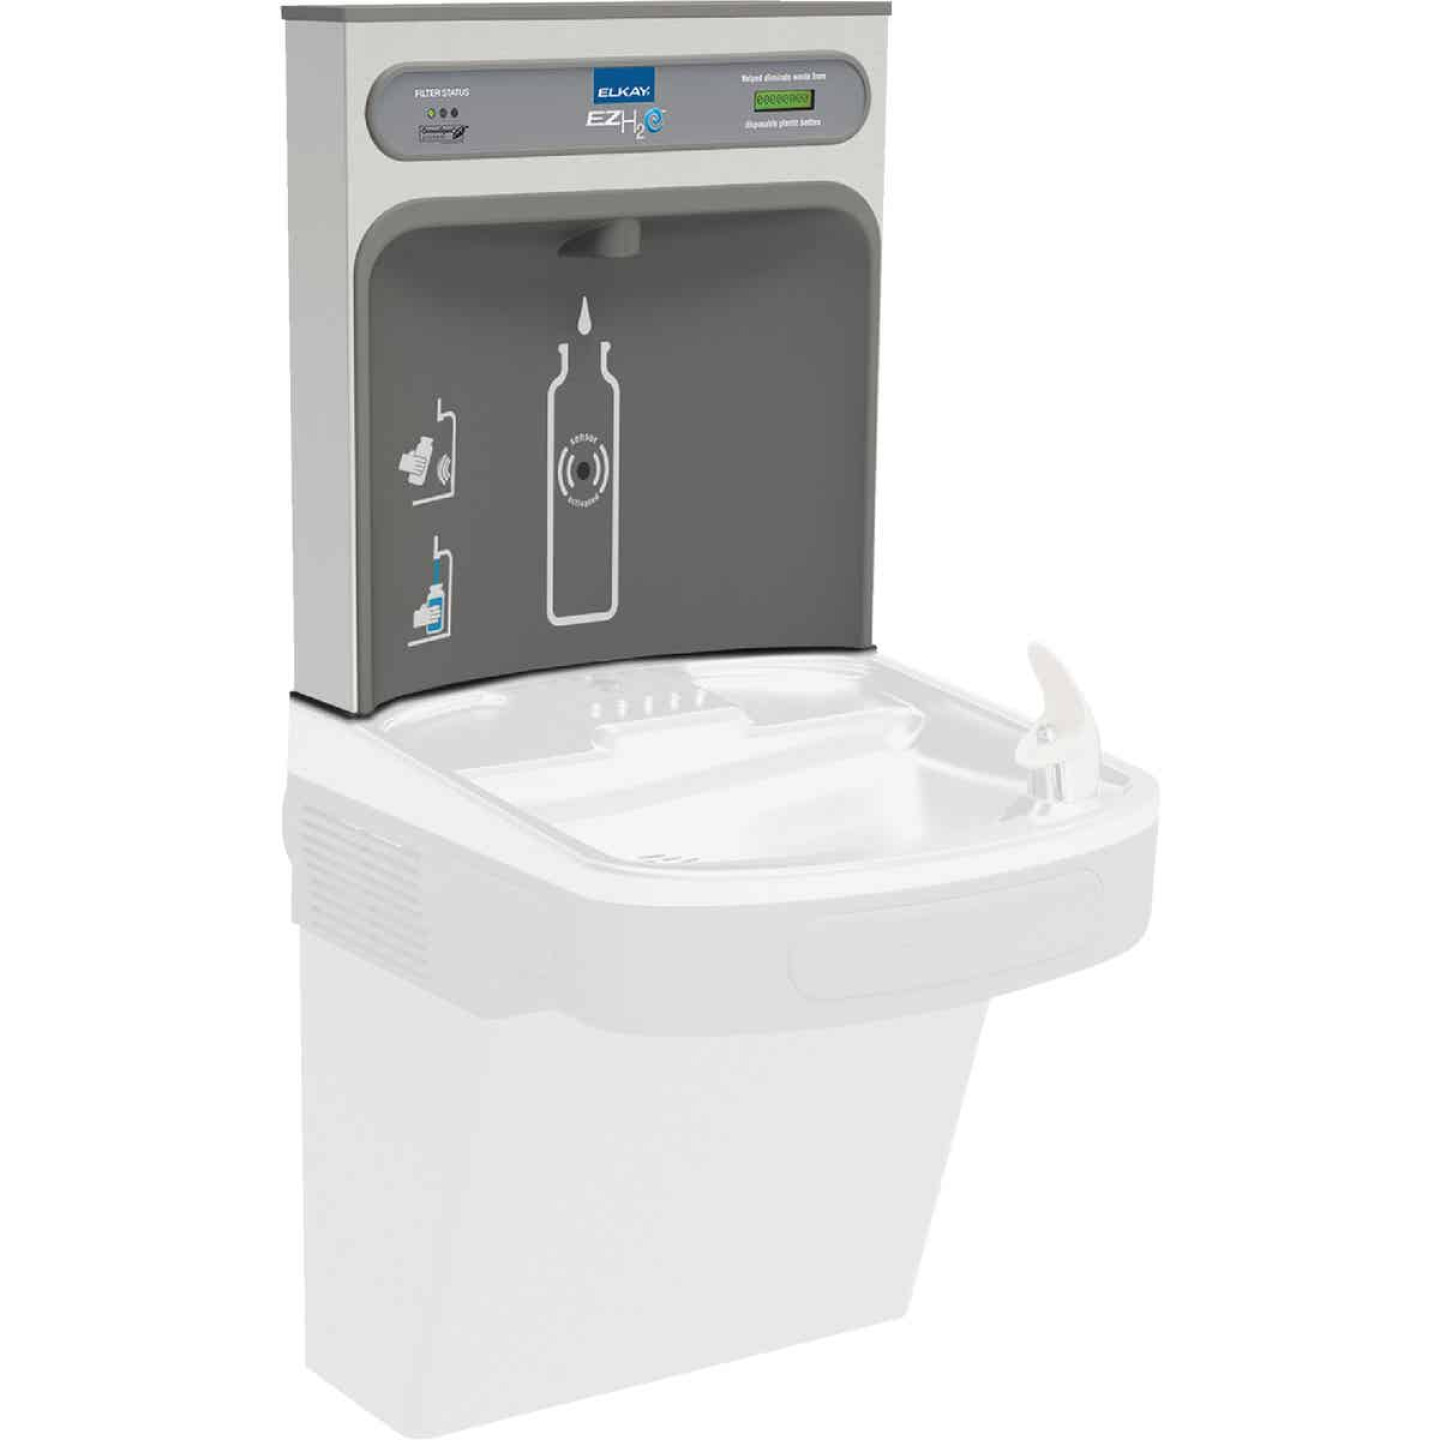 Elkay EZH2O Commercial 1.5 GPM Indoor Bottle Filling Station Image 1